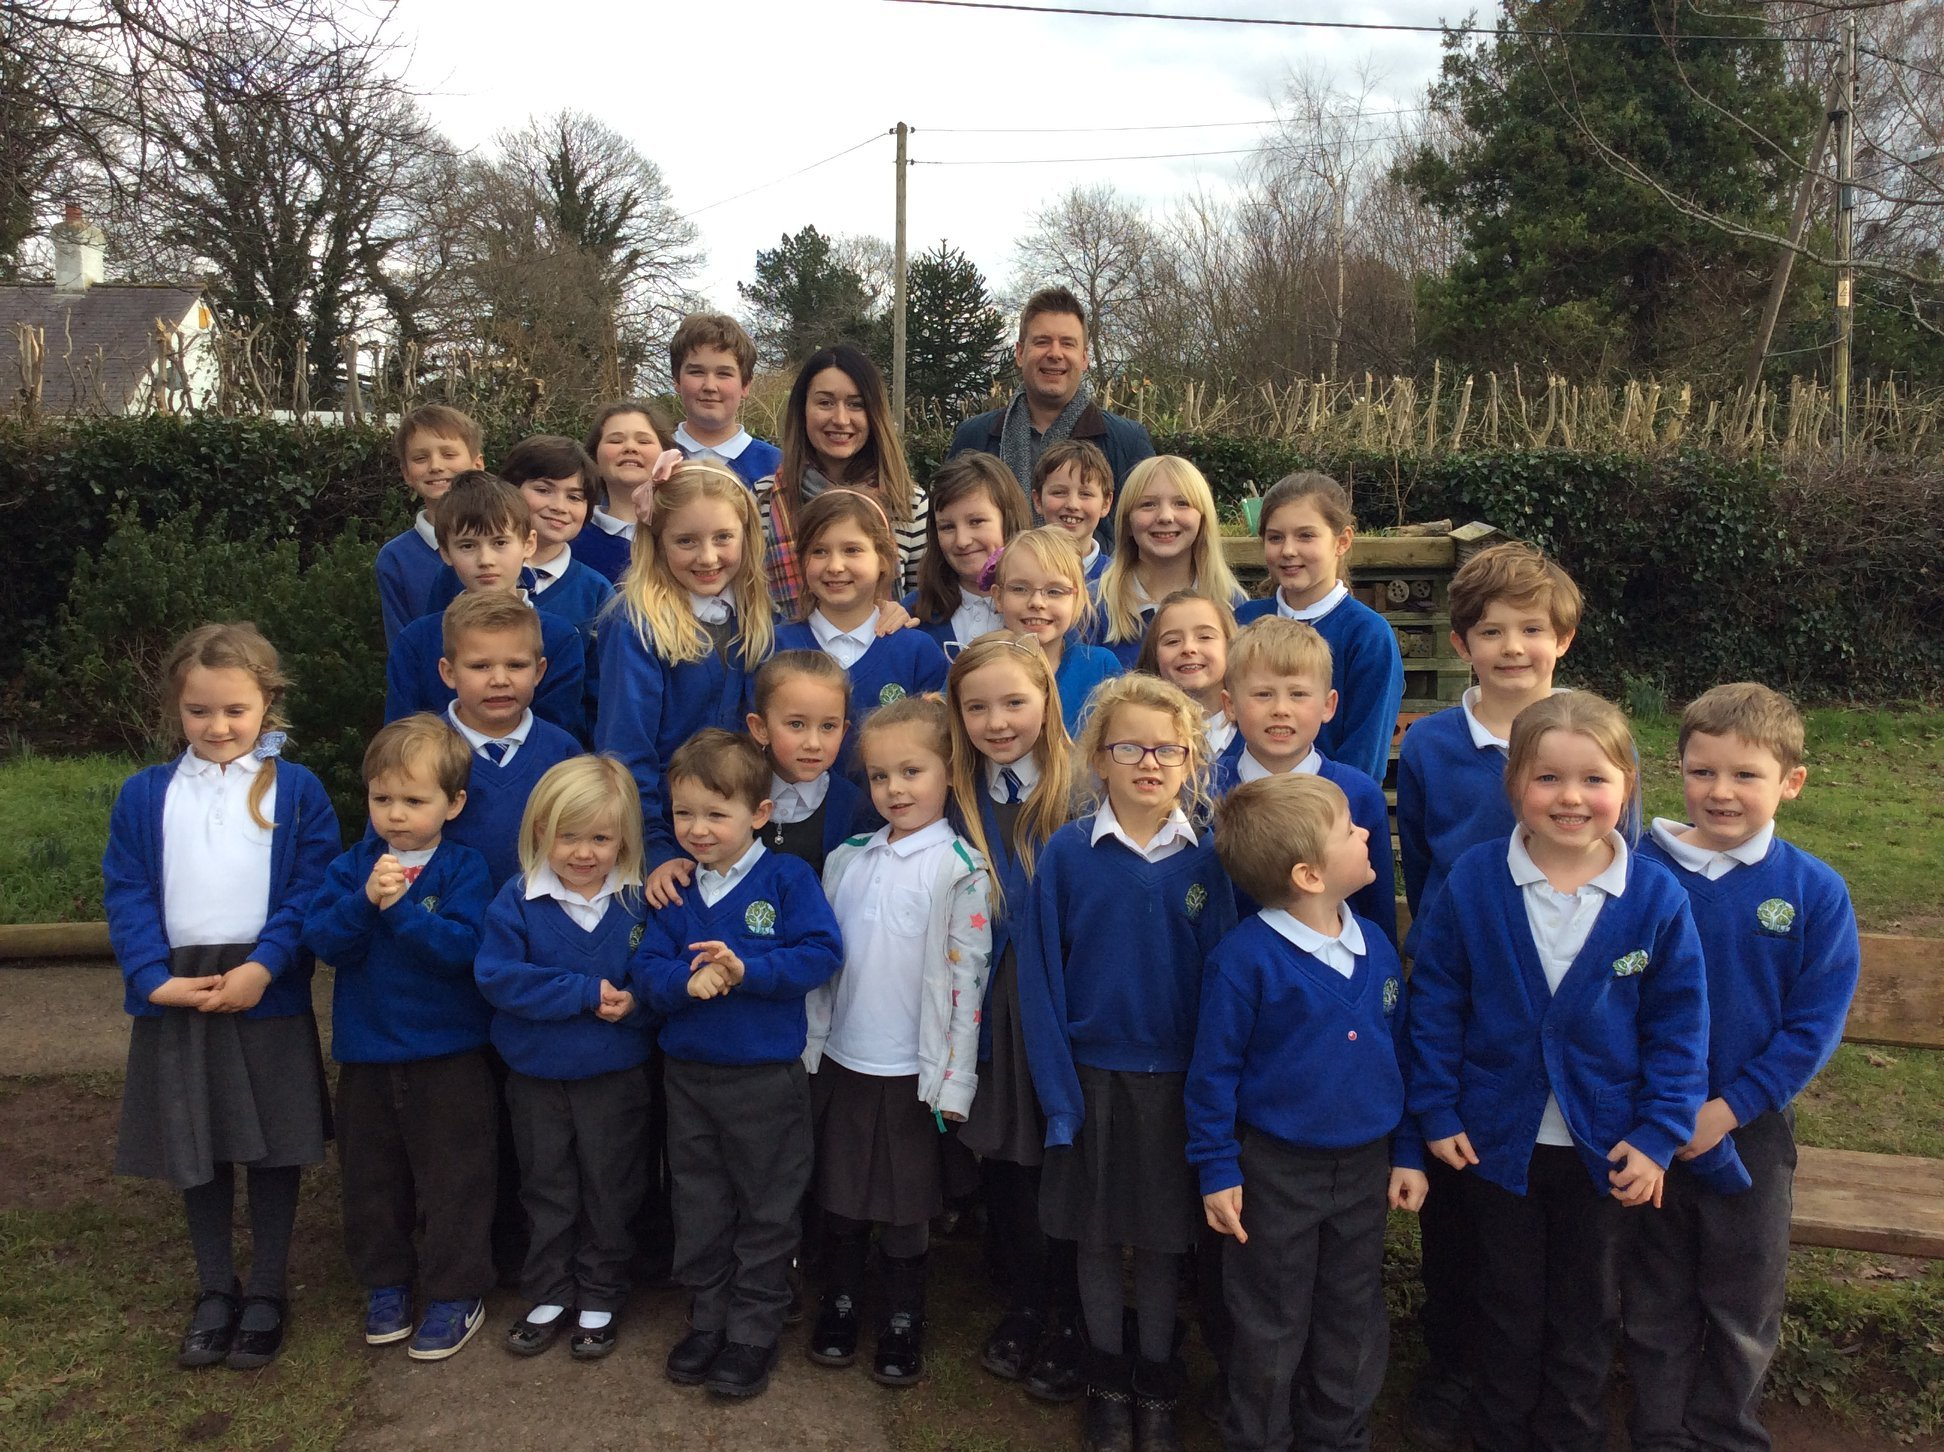 Ysgol Bryn Clwyd studnets with broadcasters from Heart FM